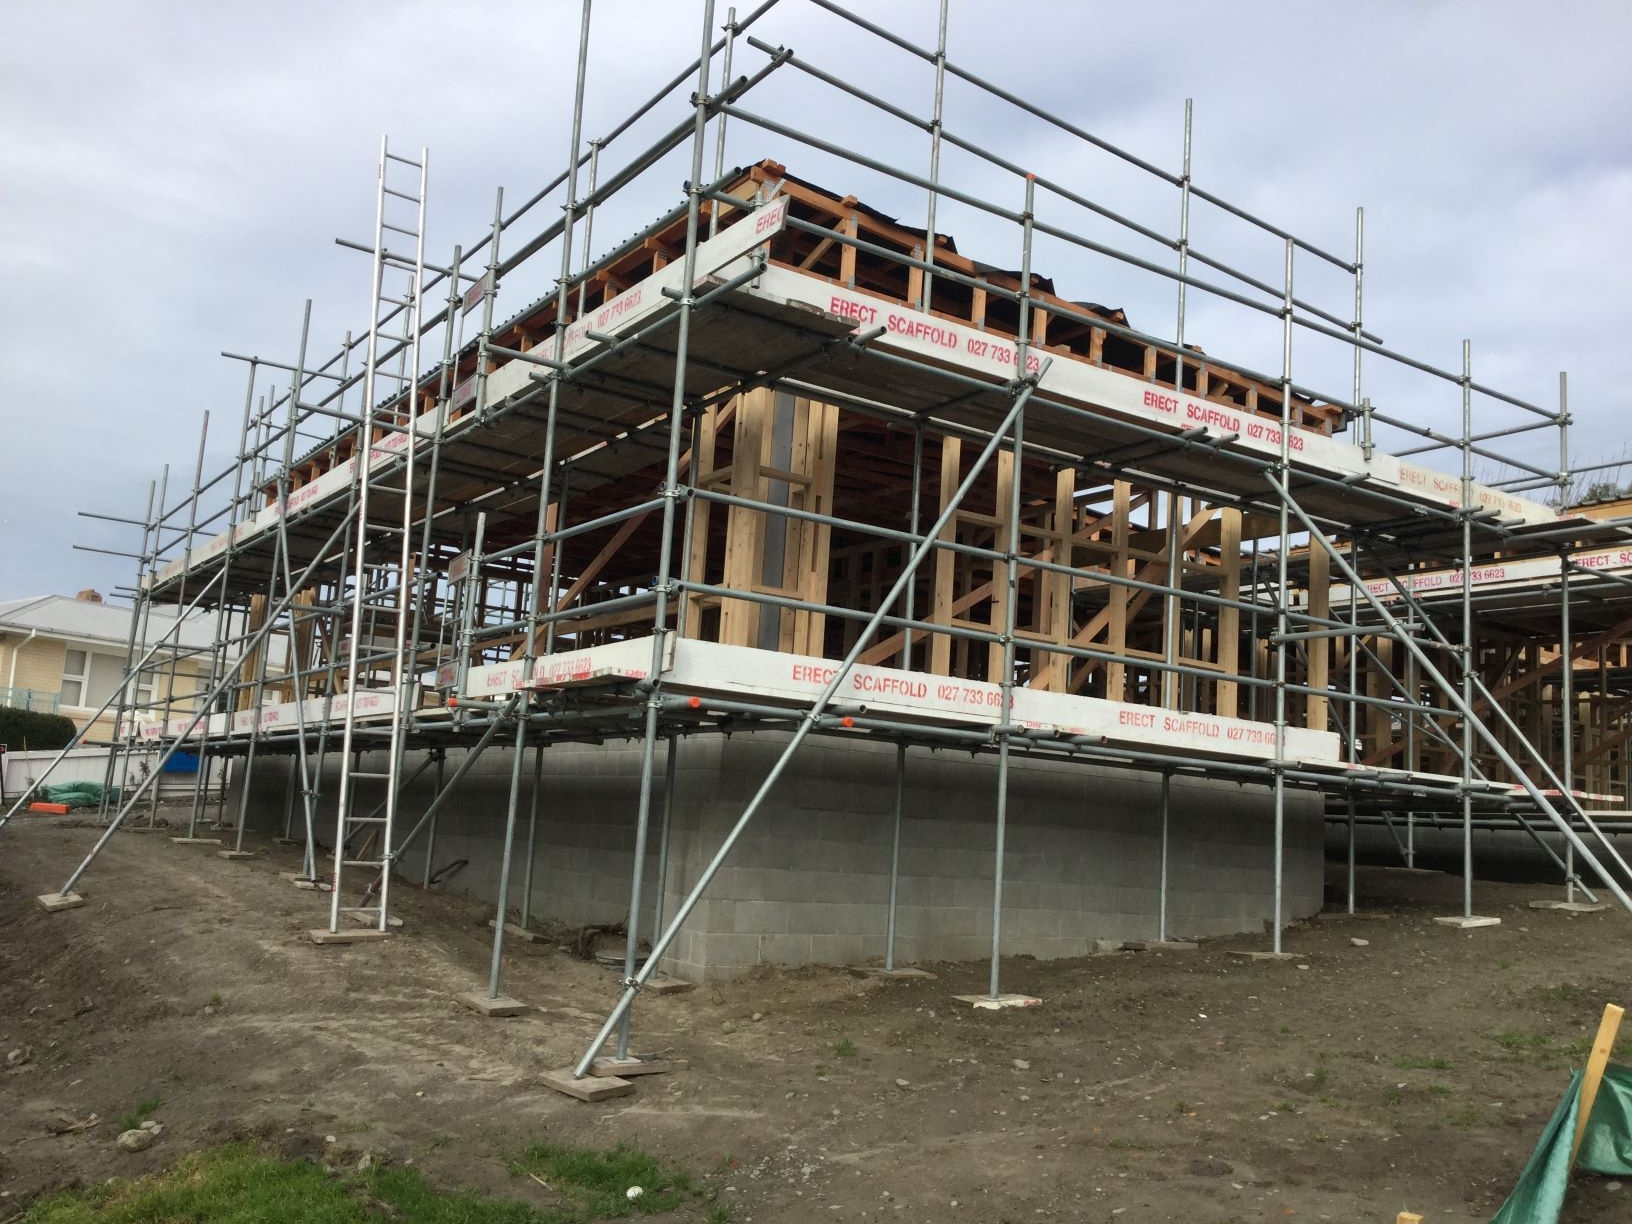 Roof Edge Protection Christchurch Erect Scaffolding LTD